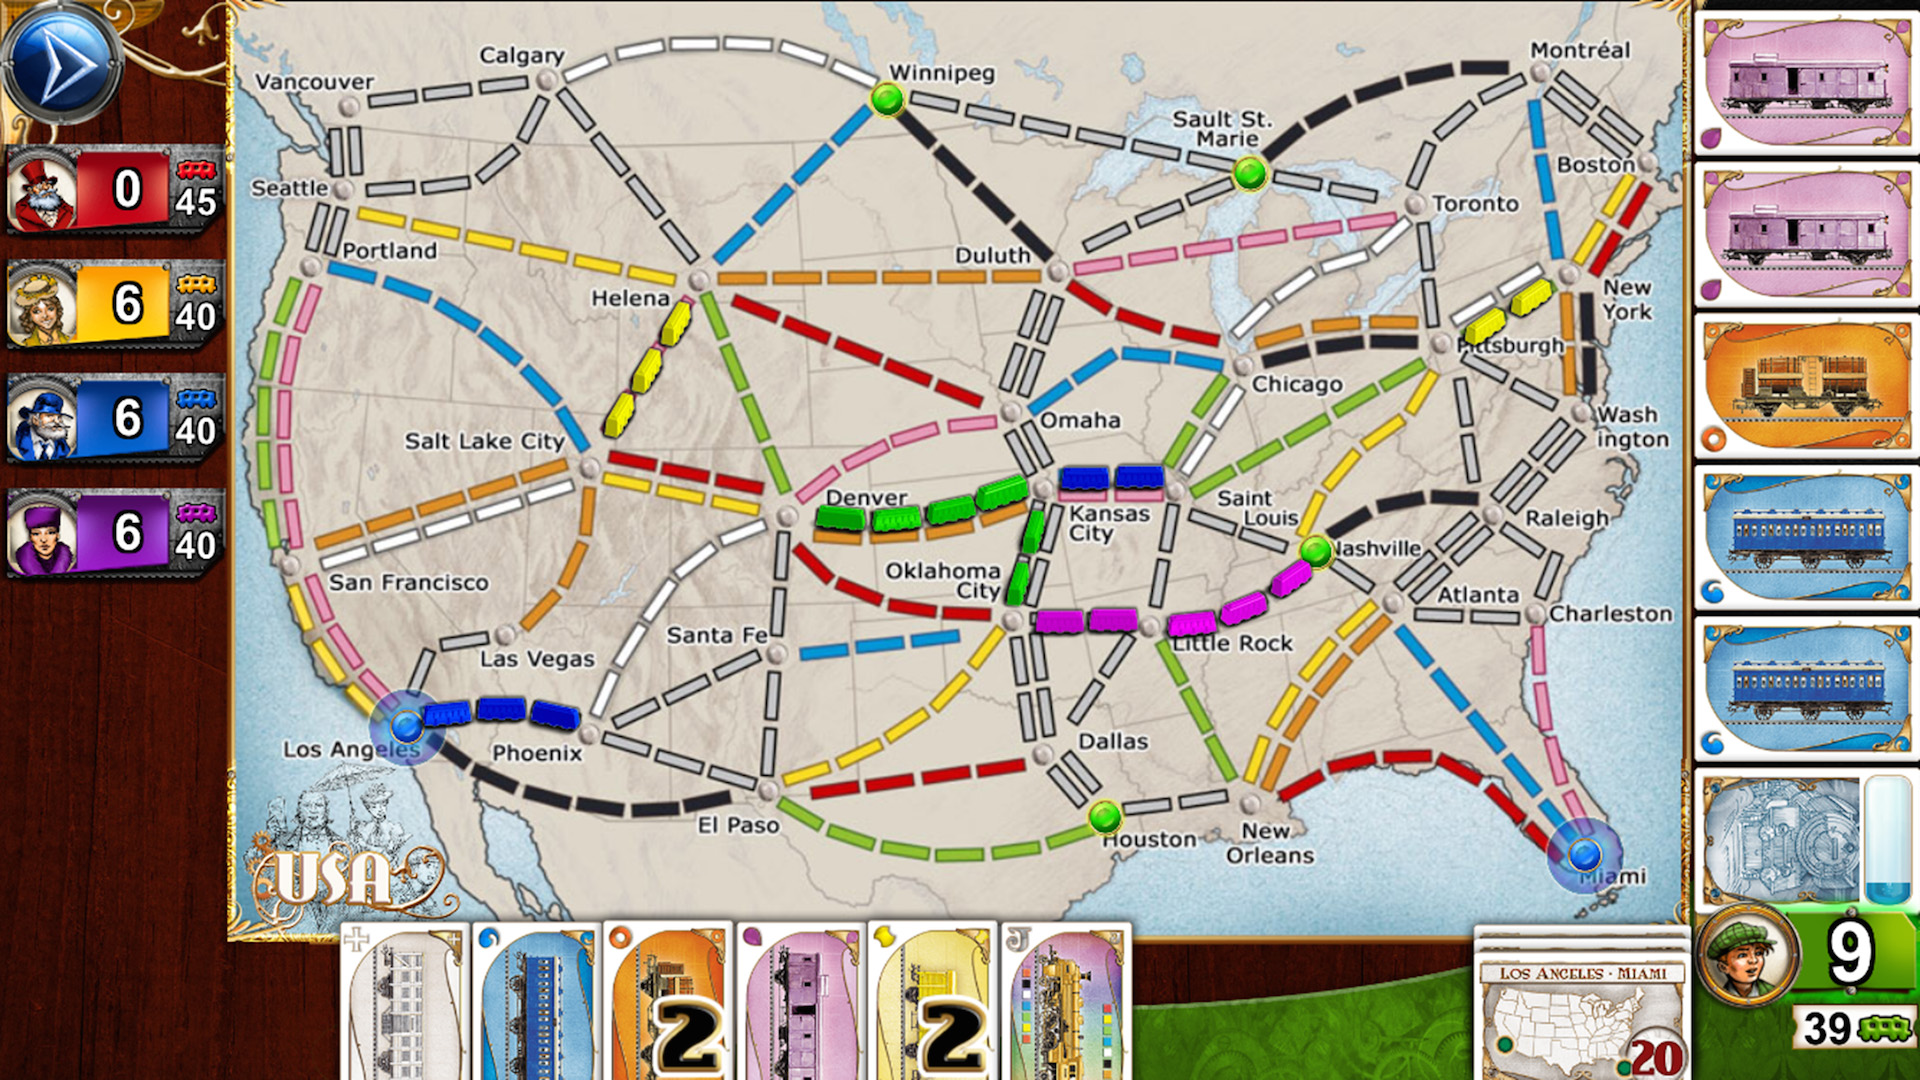 Amazon.com: Ticket to Ride: Appstore for Android.